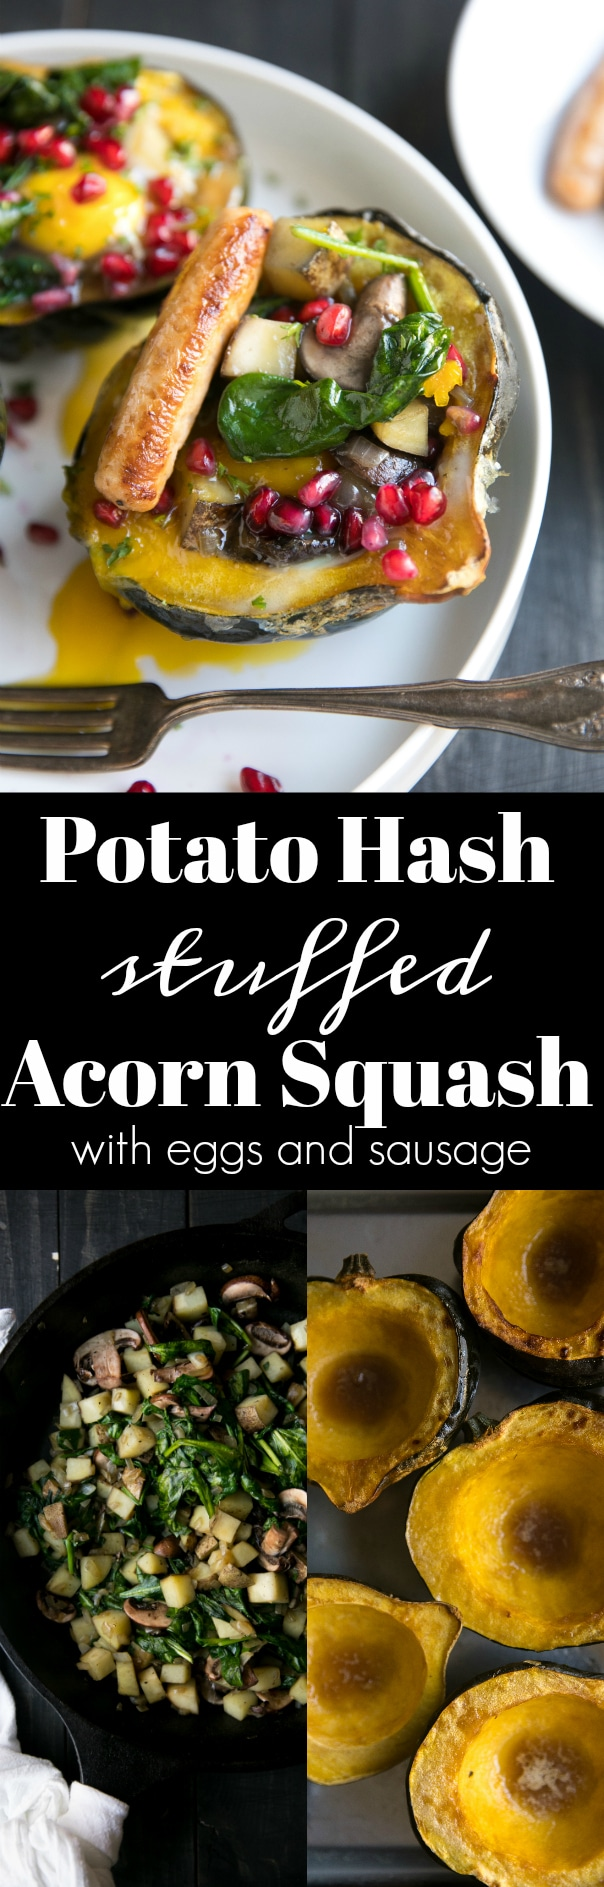 Potato Hash Stuffed Acorn Squash with Sausage and Eggs via @theforkedspoon #potato #eggs #acornsquash #sausage #breakfast #recipe #brunch #spinach #theforkedspoon